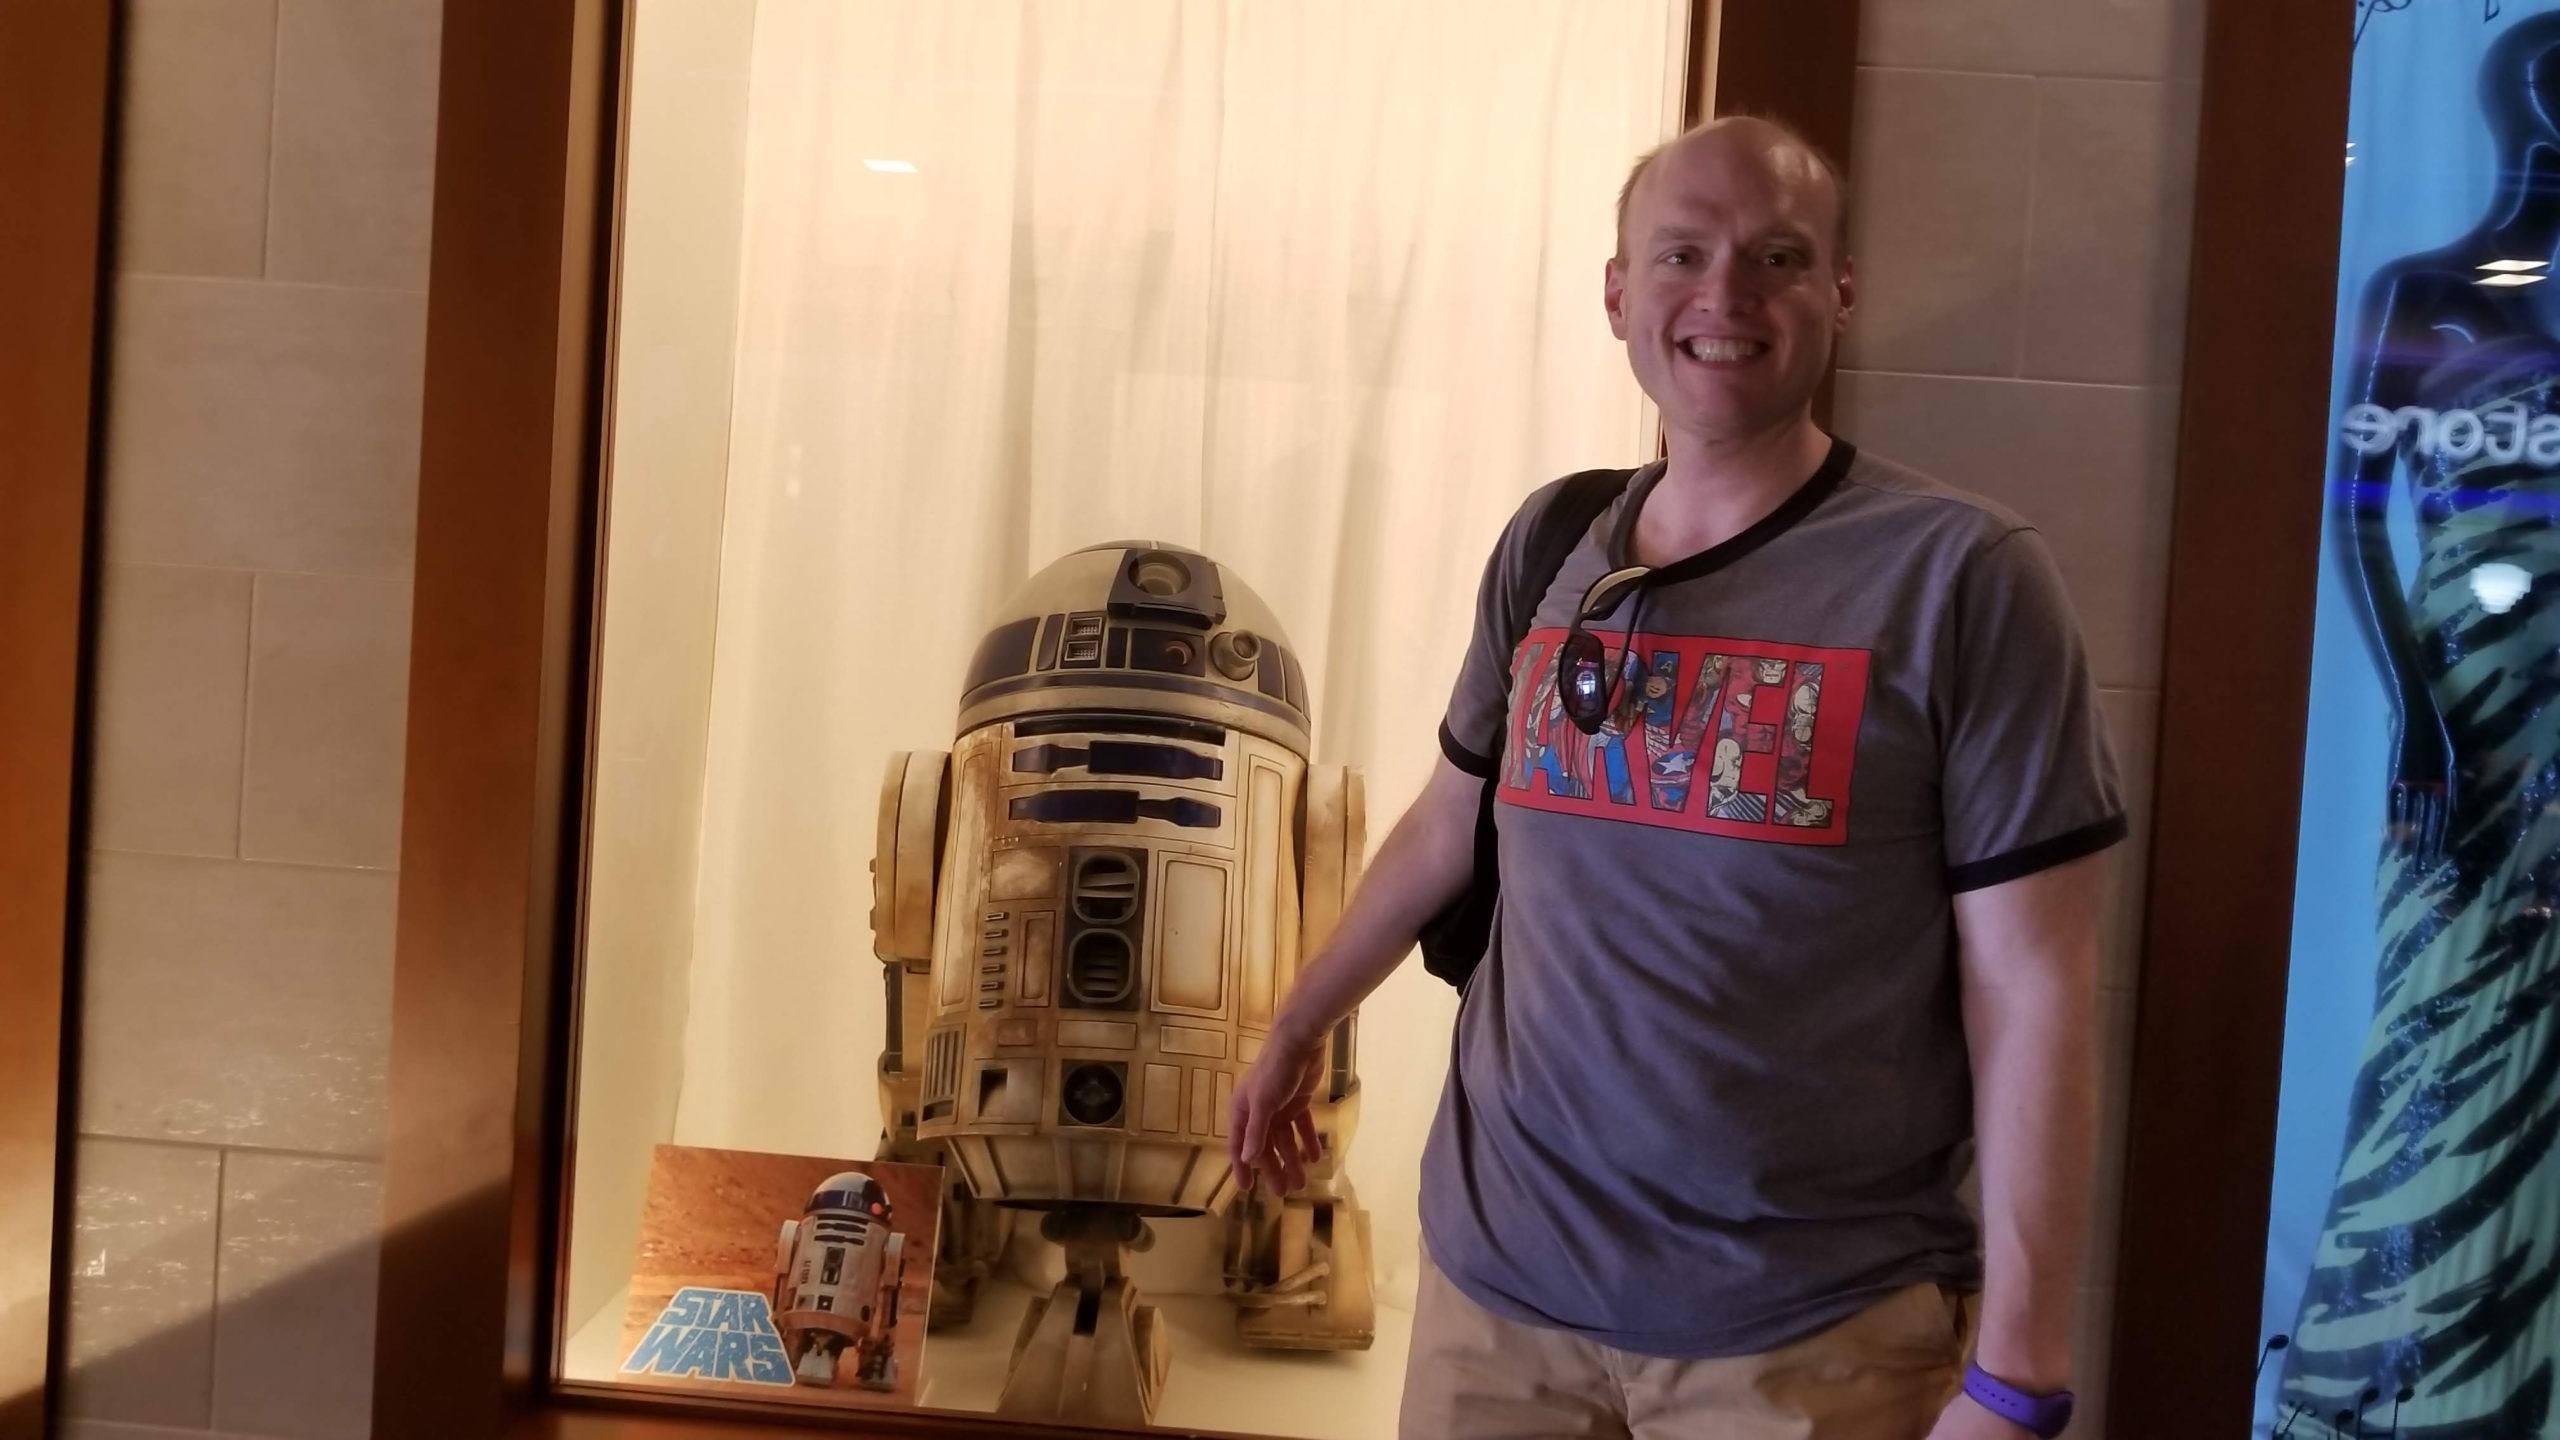 Man in a gray Marvel t-shirt next to a Star Wars character